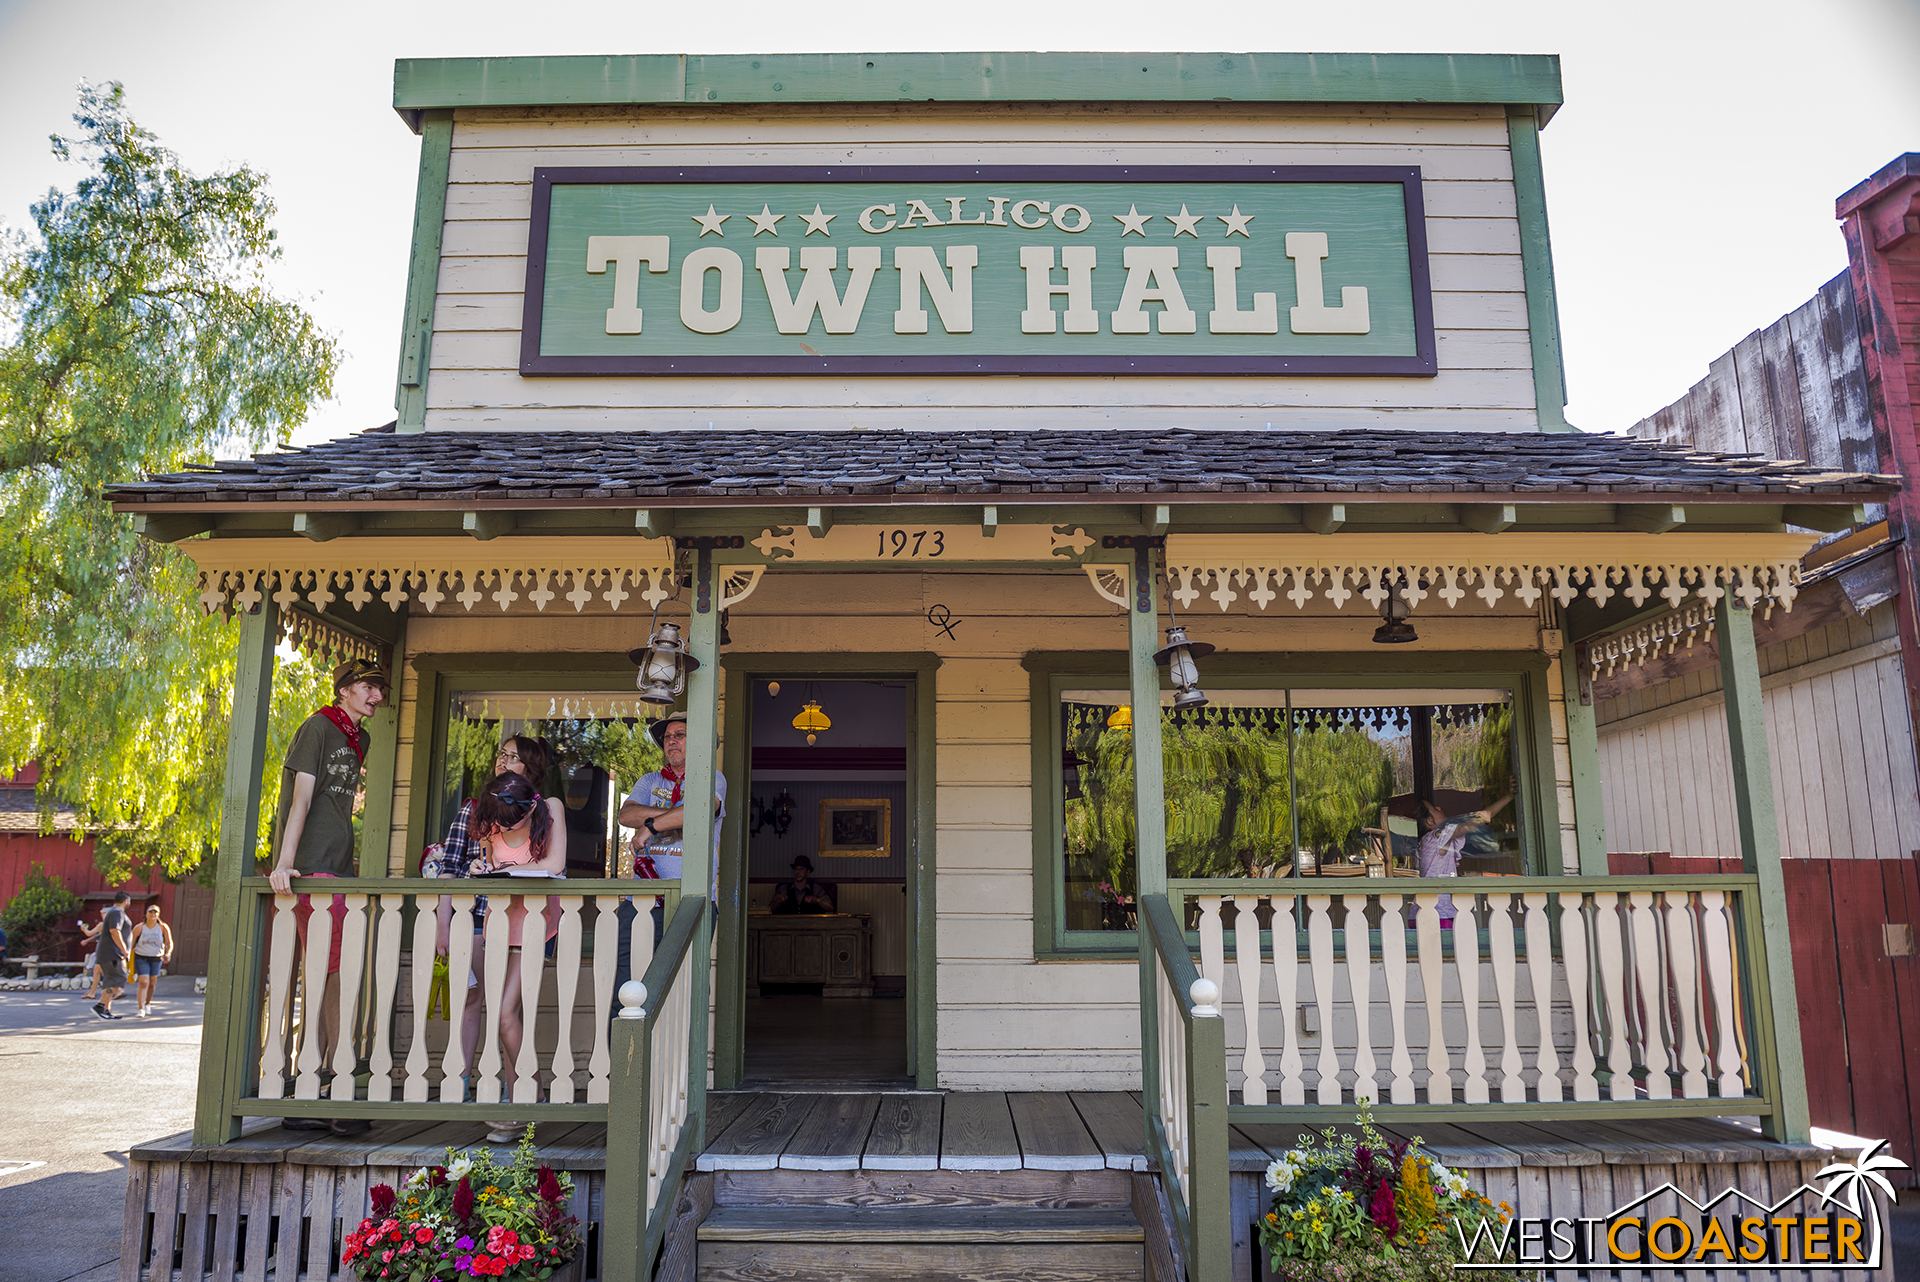 Town Hall is once again a focal point in Ghost Town Alive.